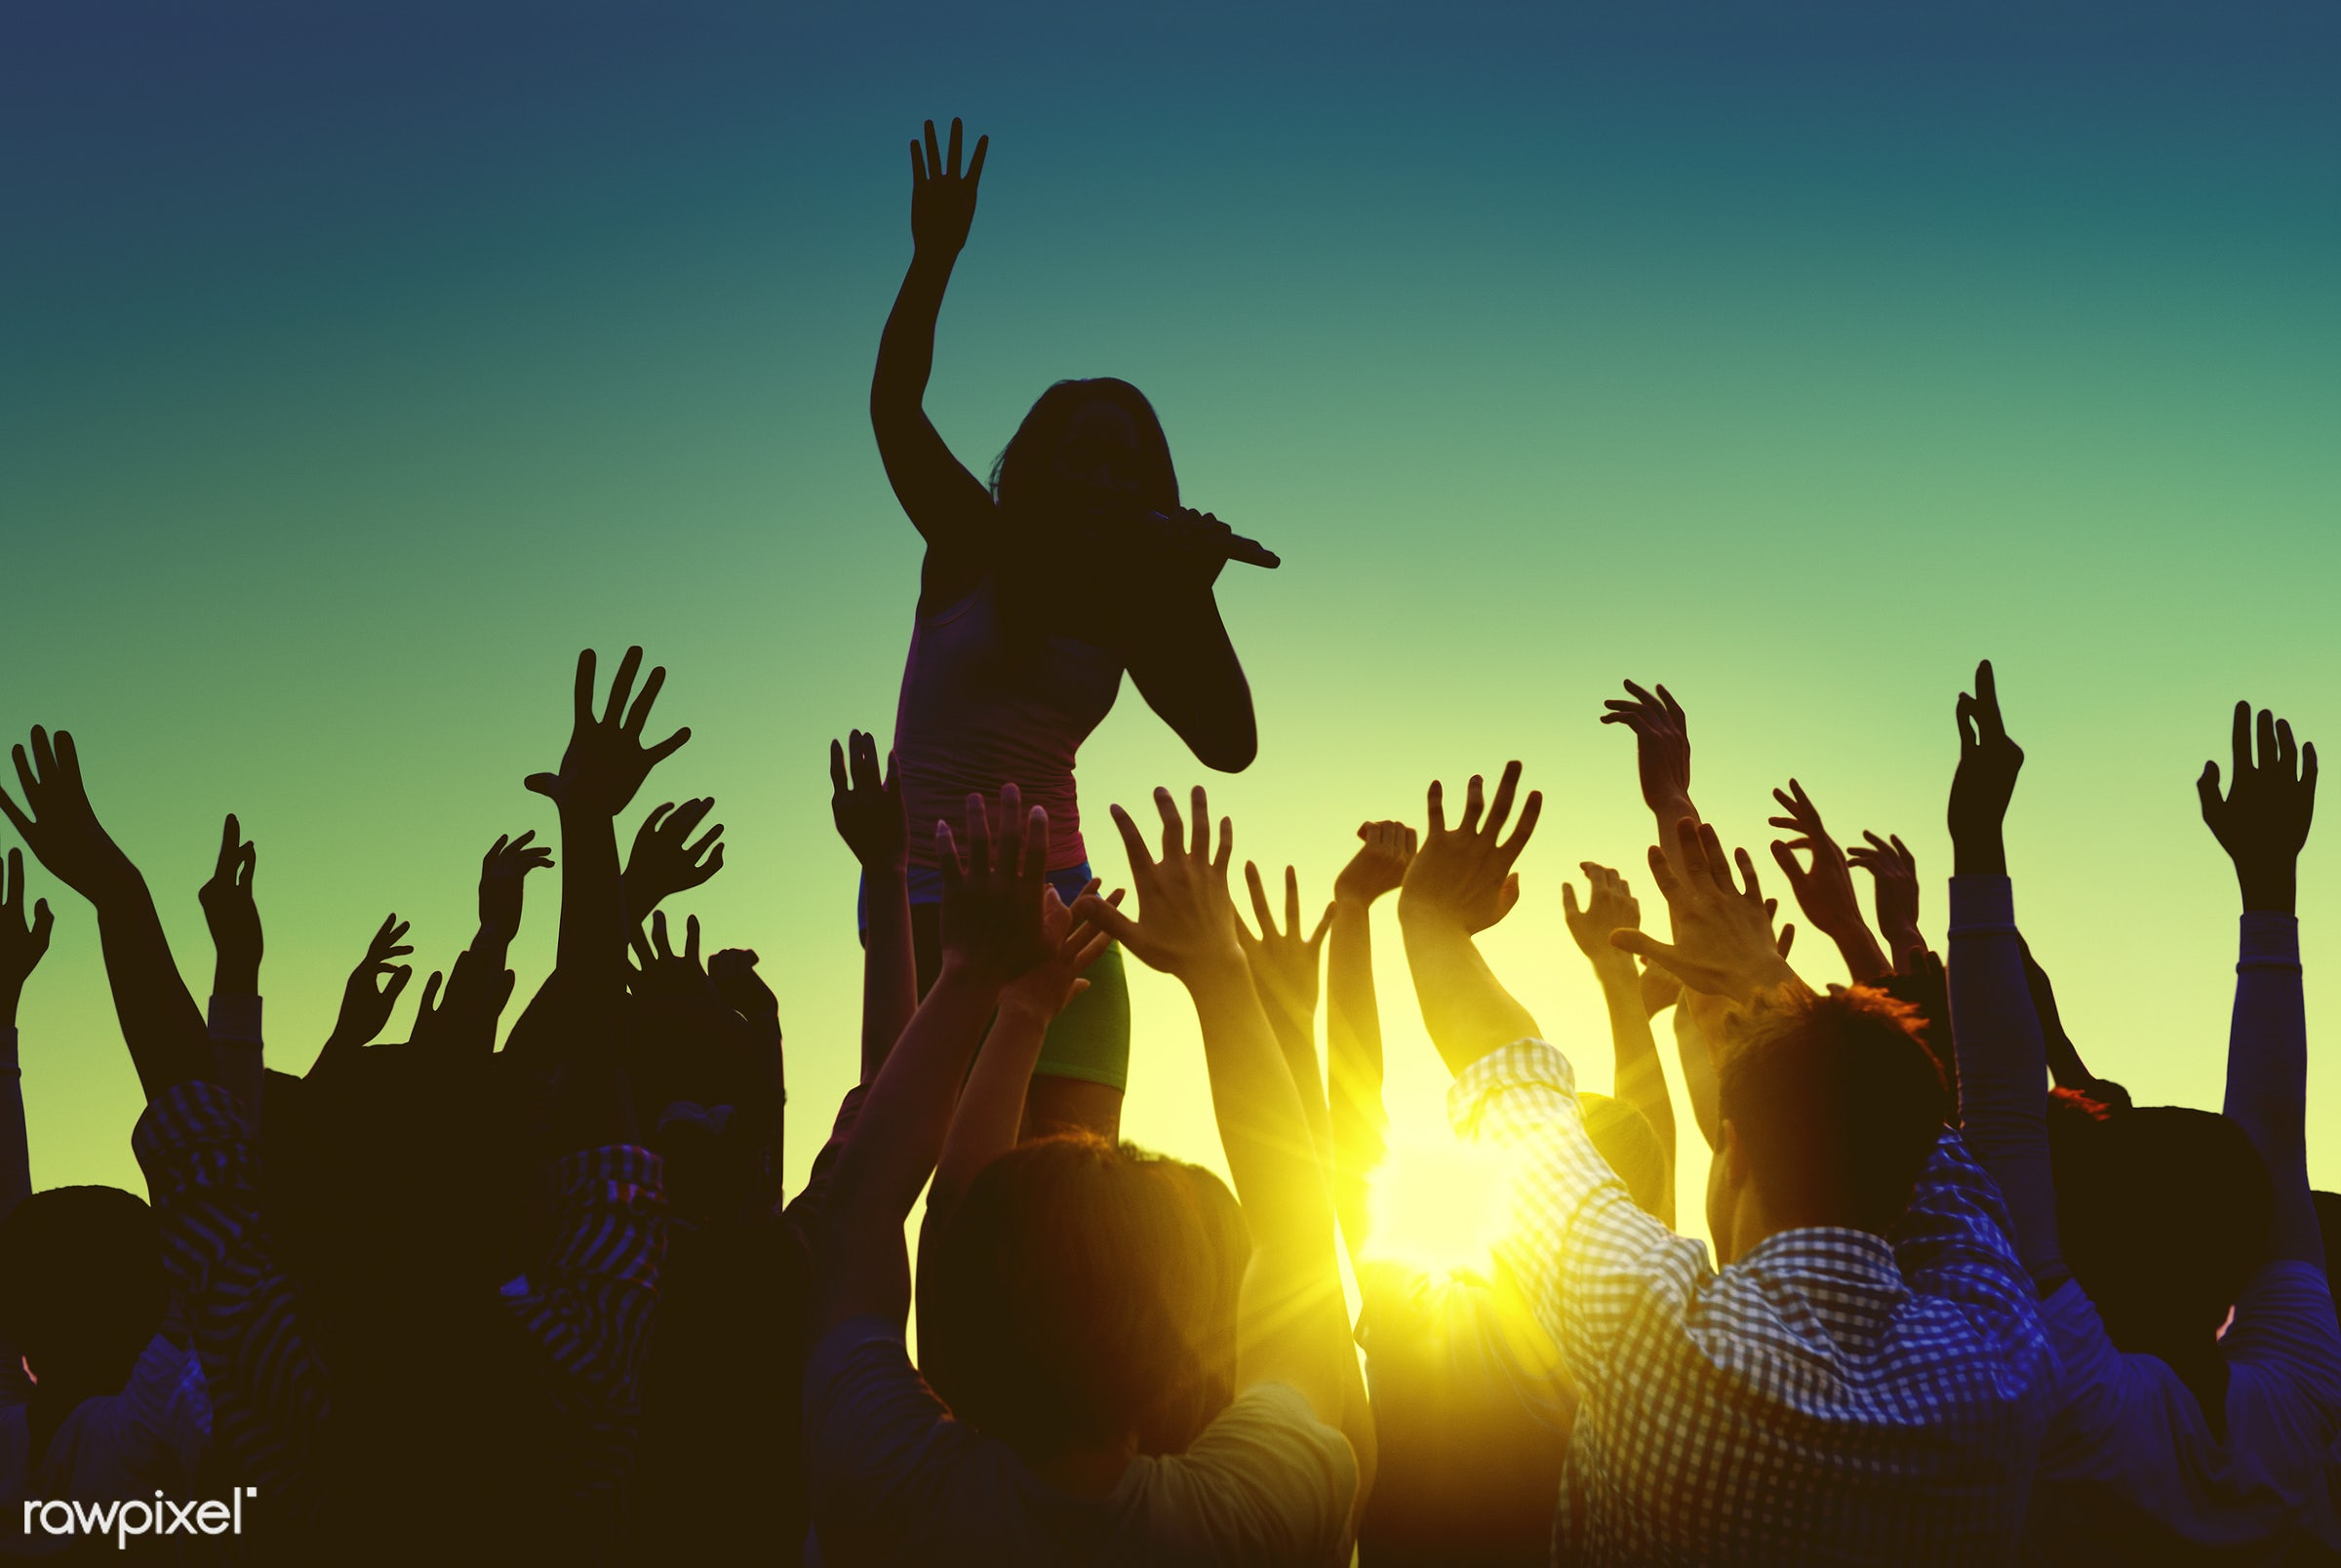 Silhouettes of a singer and a crowd - festival, music, audience, beach, singer, beer, event, alcohol, applauding, arms...